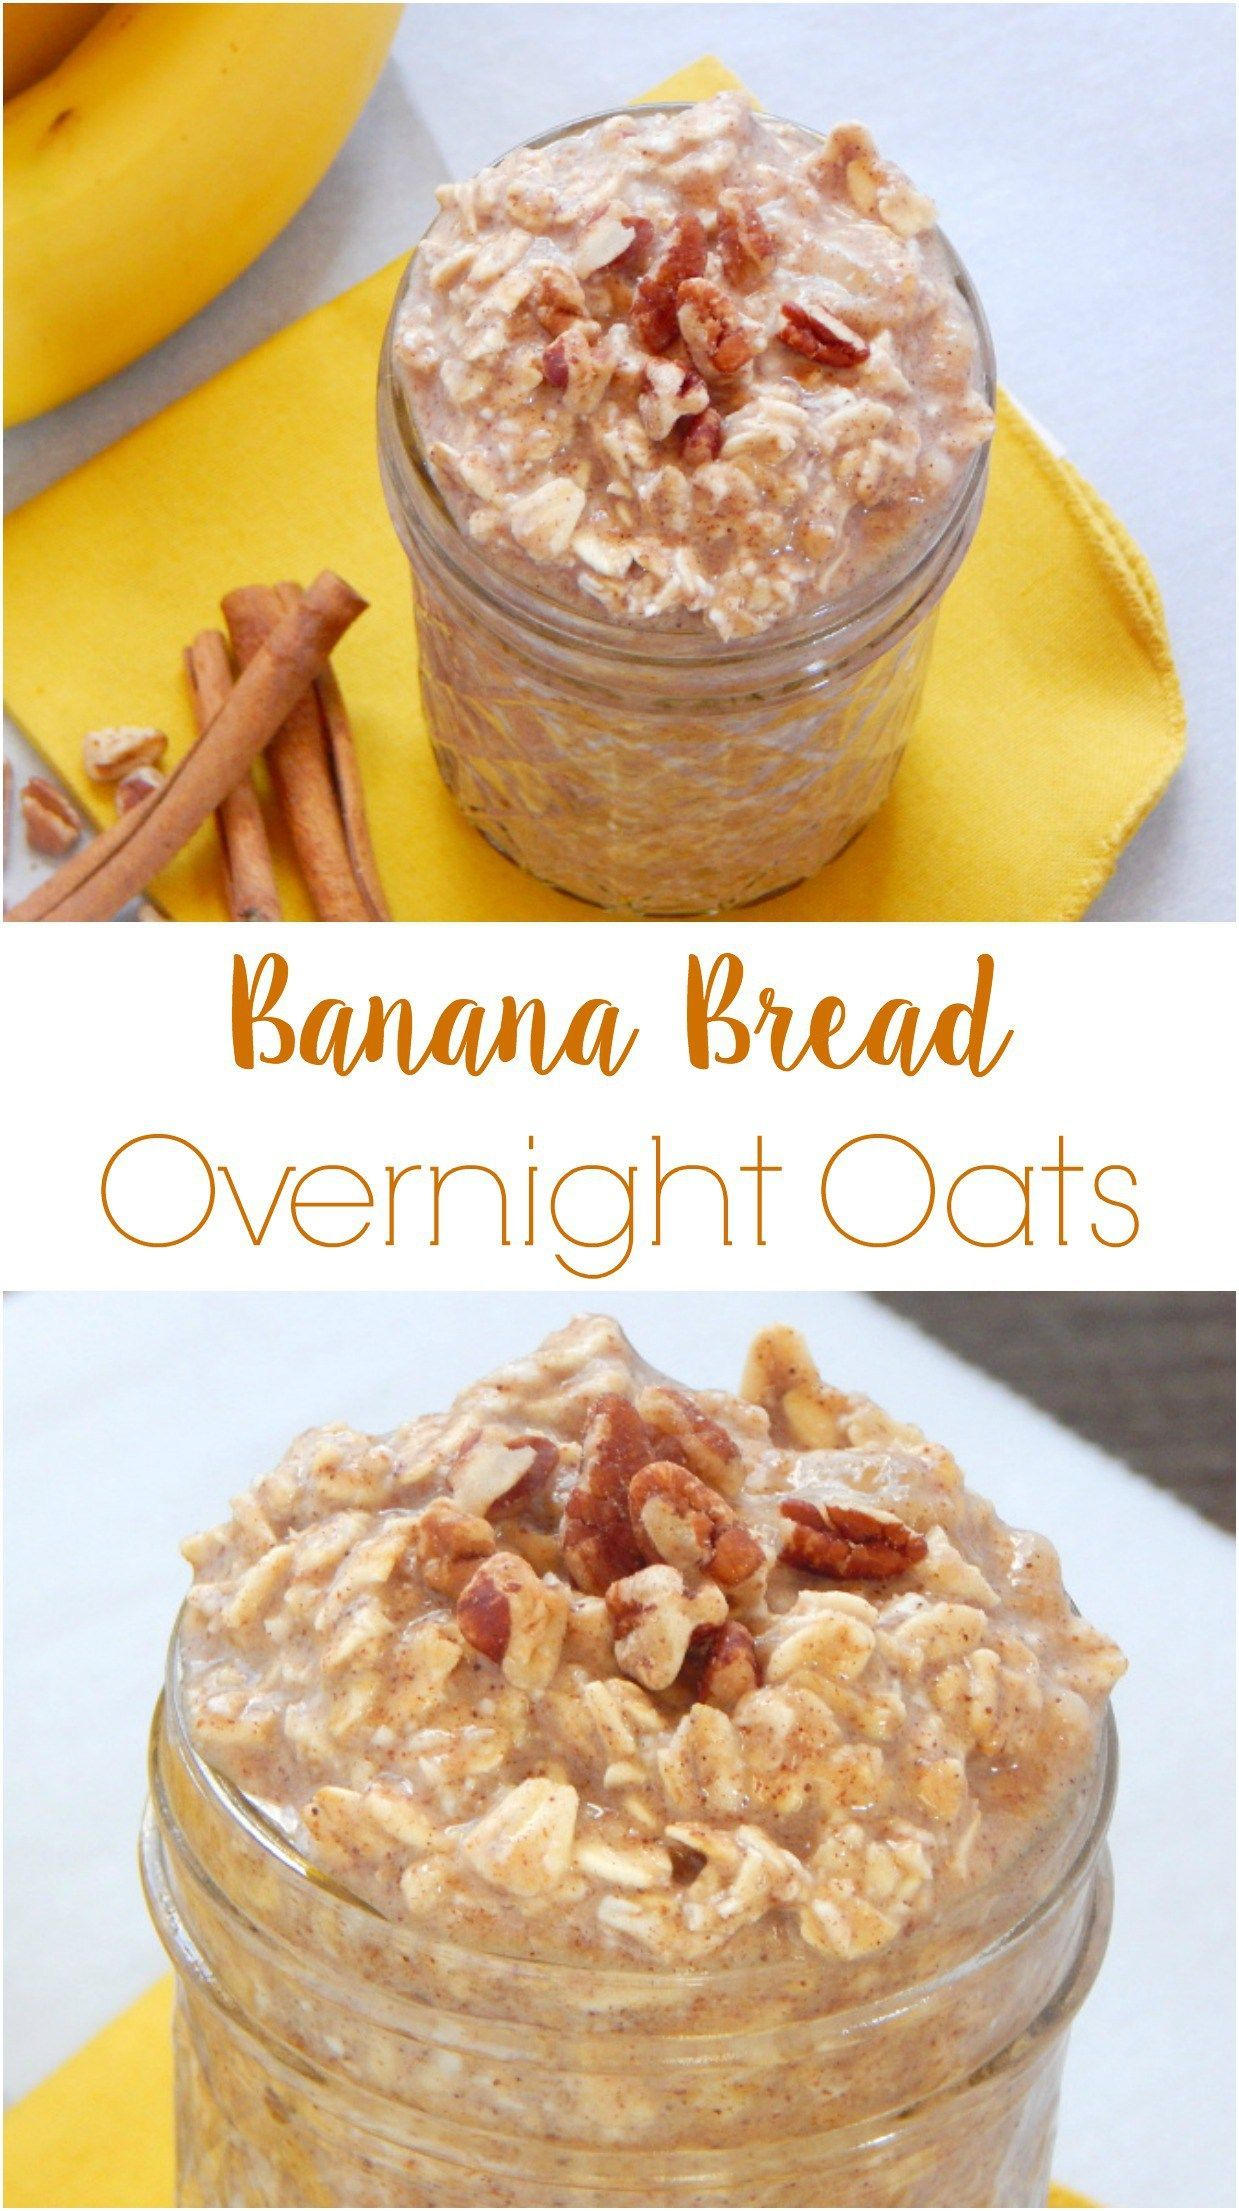 Bread Overnight Oats Banana Bread Overnight Oats. Make this simple breakfast tonight and it's ready in the morning. Dairy free, gluten free and vegan friendly!Banana Bread Overnight Oats. Make this simple breakfast tonight and it's ready in the morning. Dairy free, gluten free and vegan friendly!